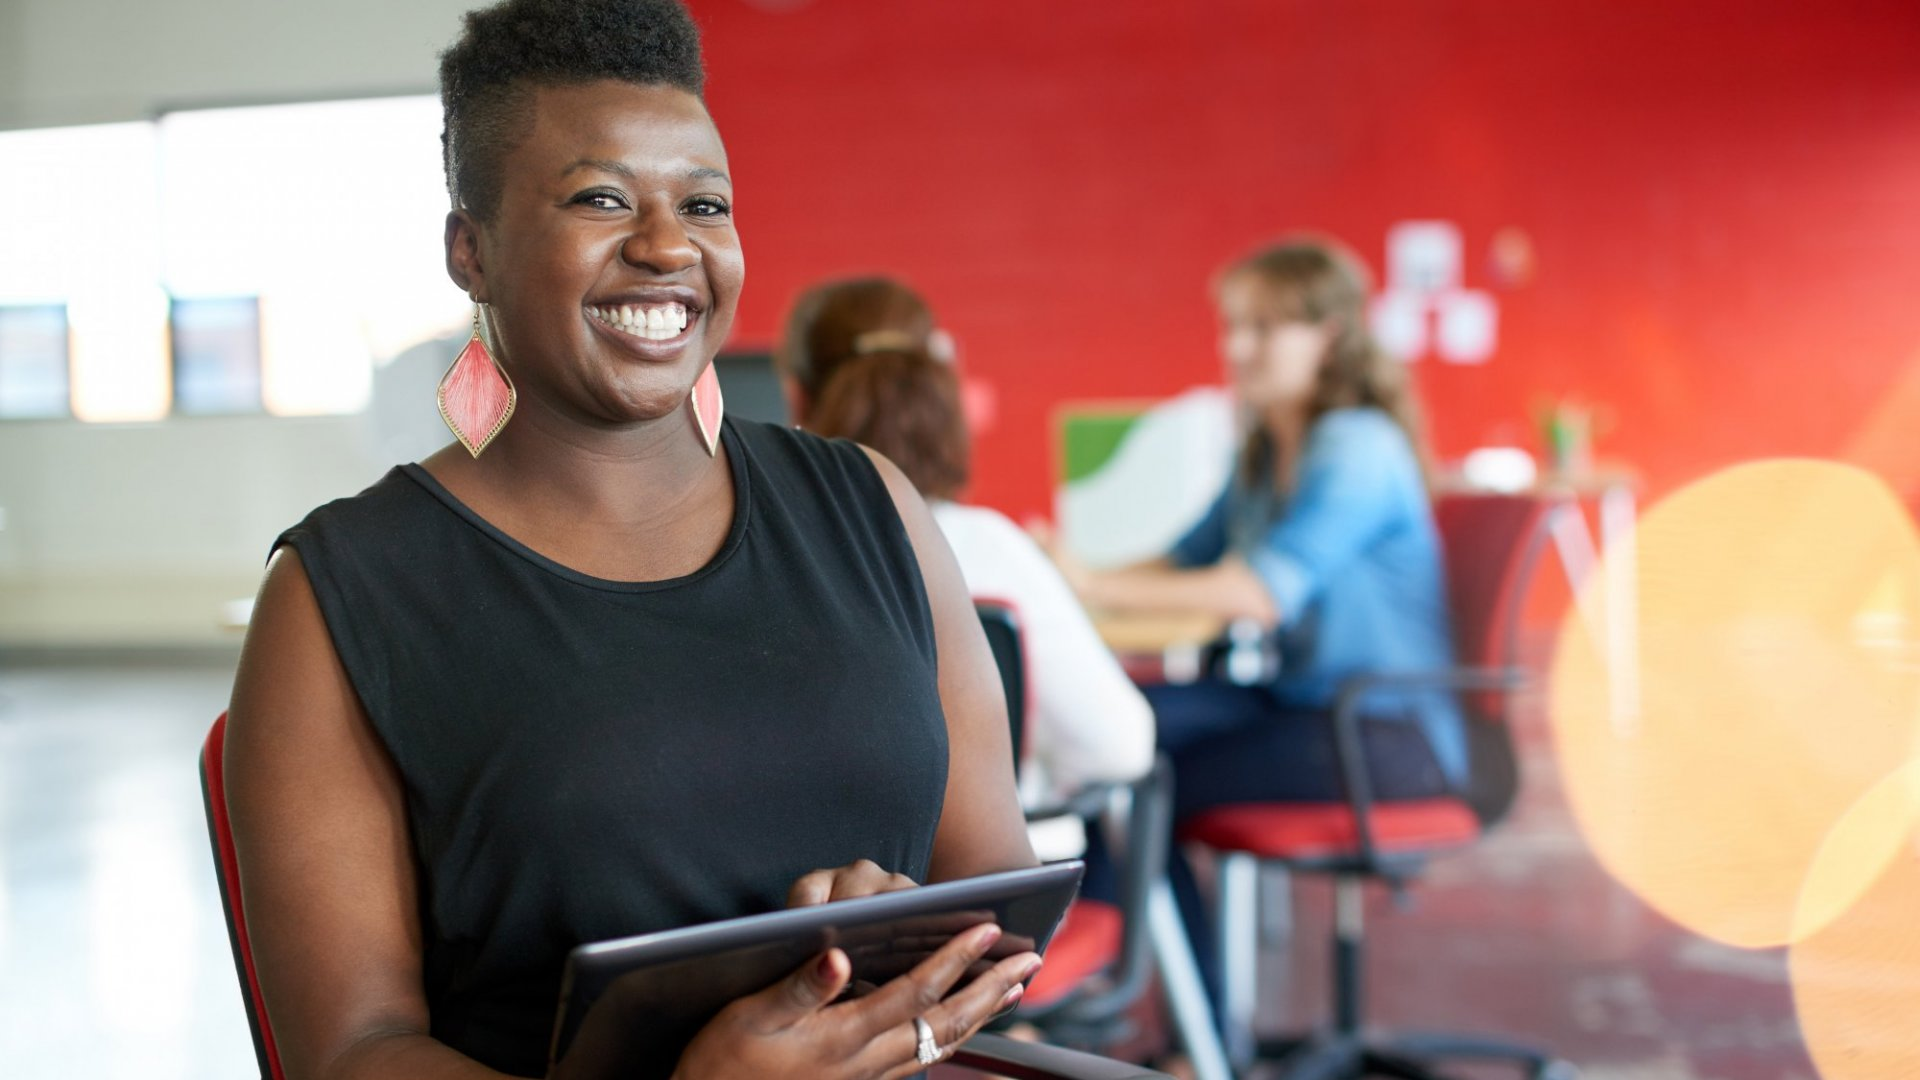 Black Women Need More Access to Funding. Here's Why